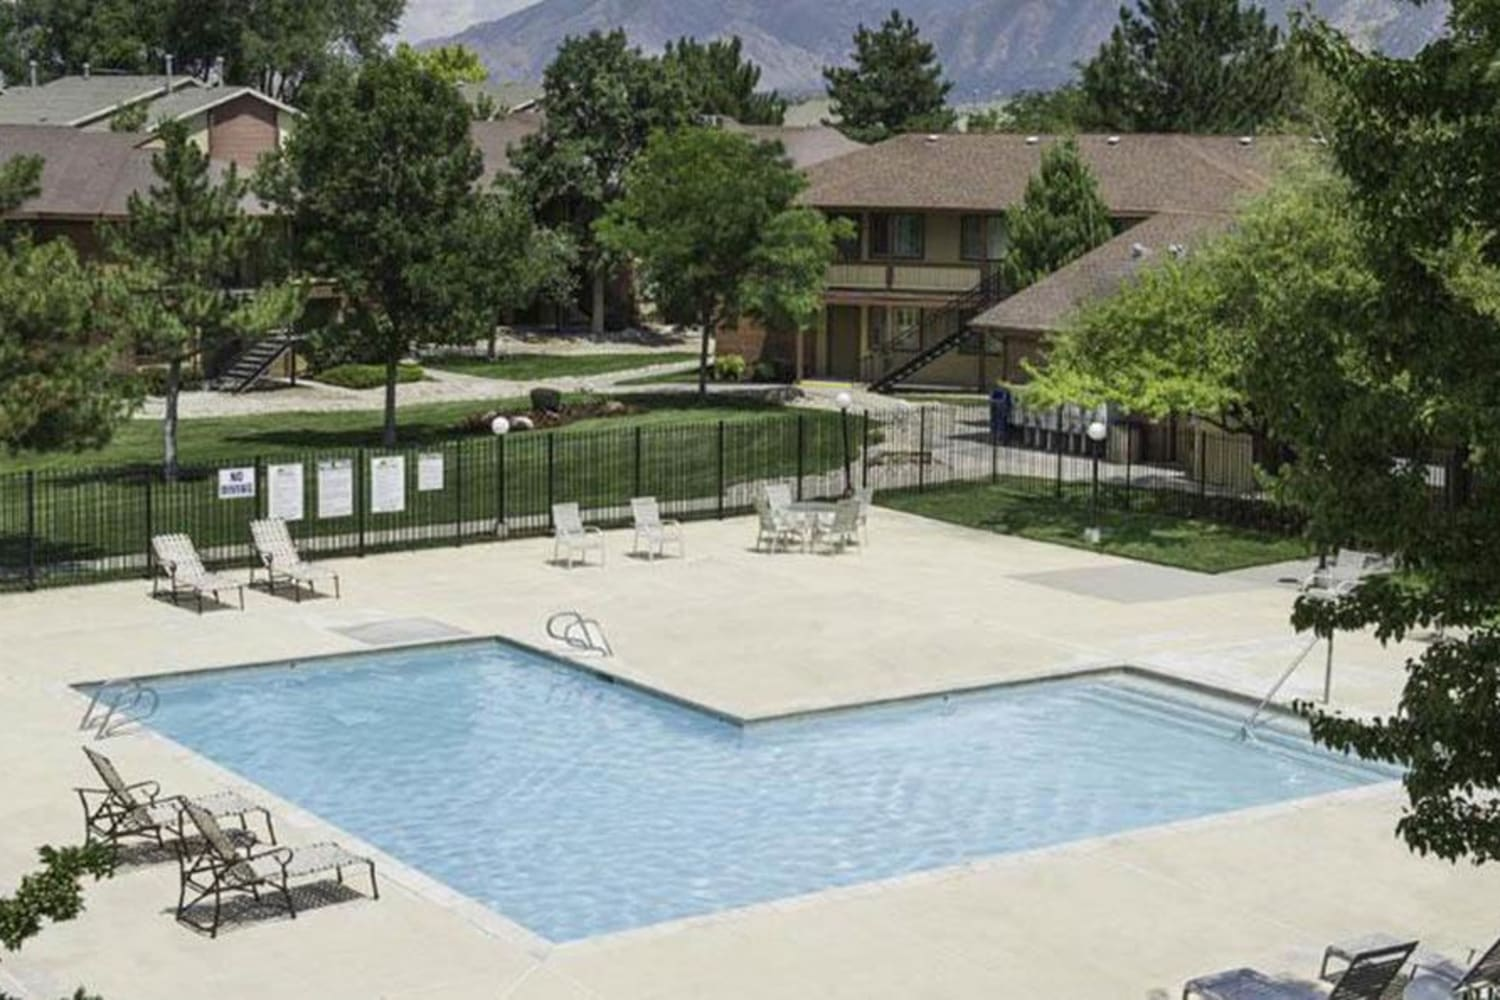 Swimming pool at Wasatch Club Apartments in Midvale, Utah